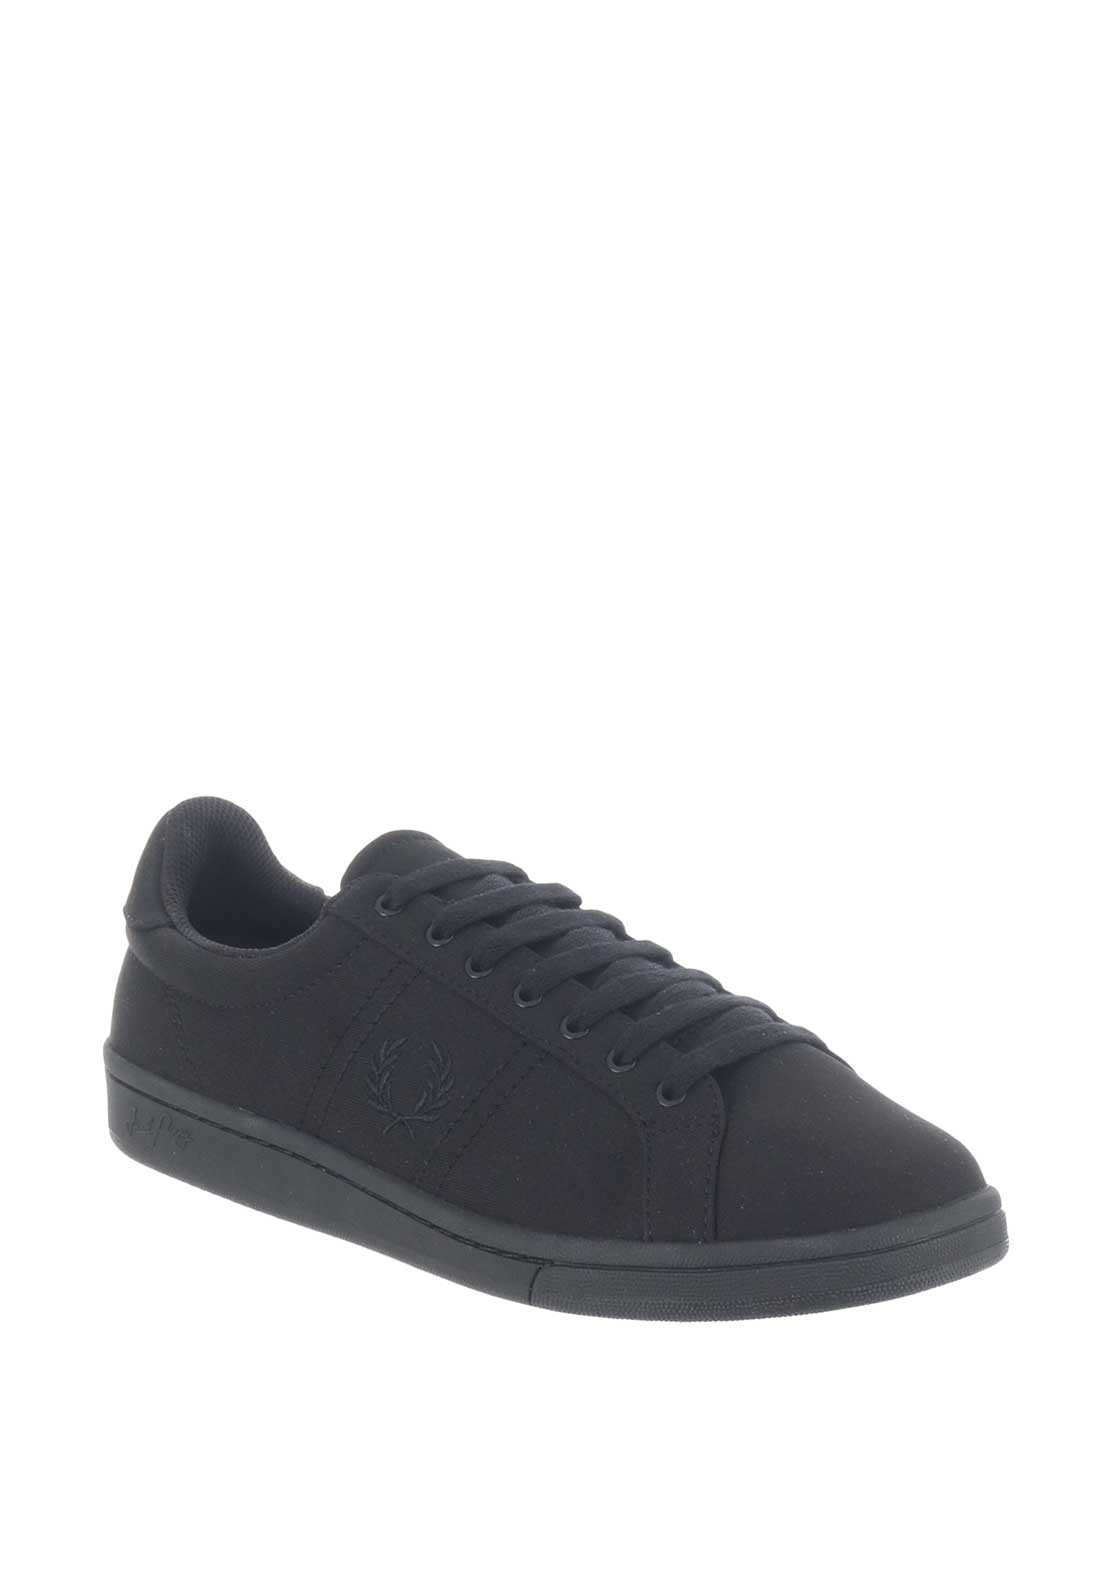 Fred Perry Tricot Canvas Trainers